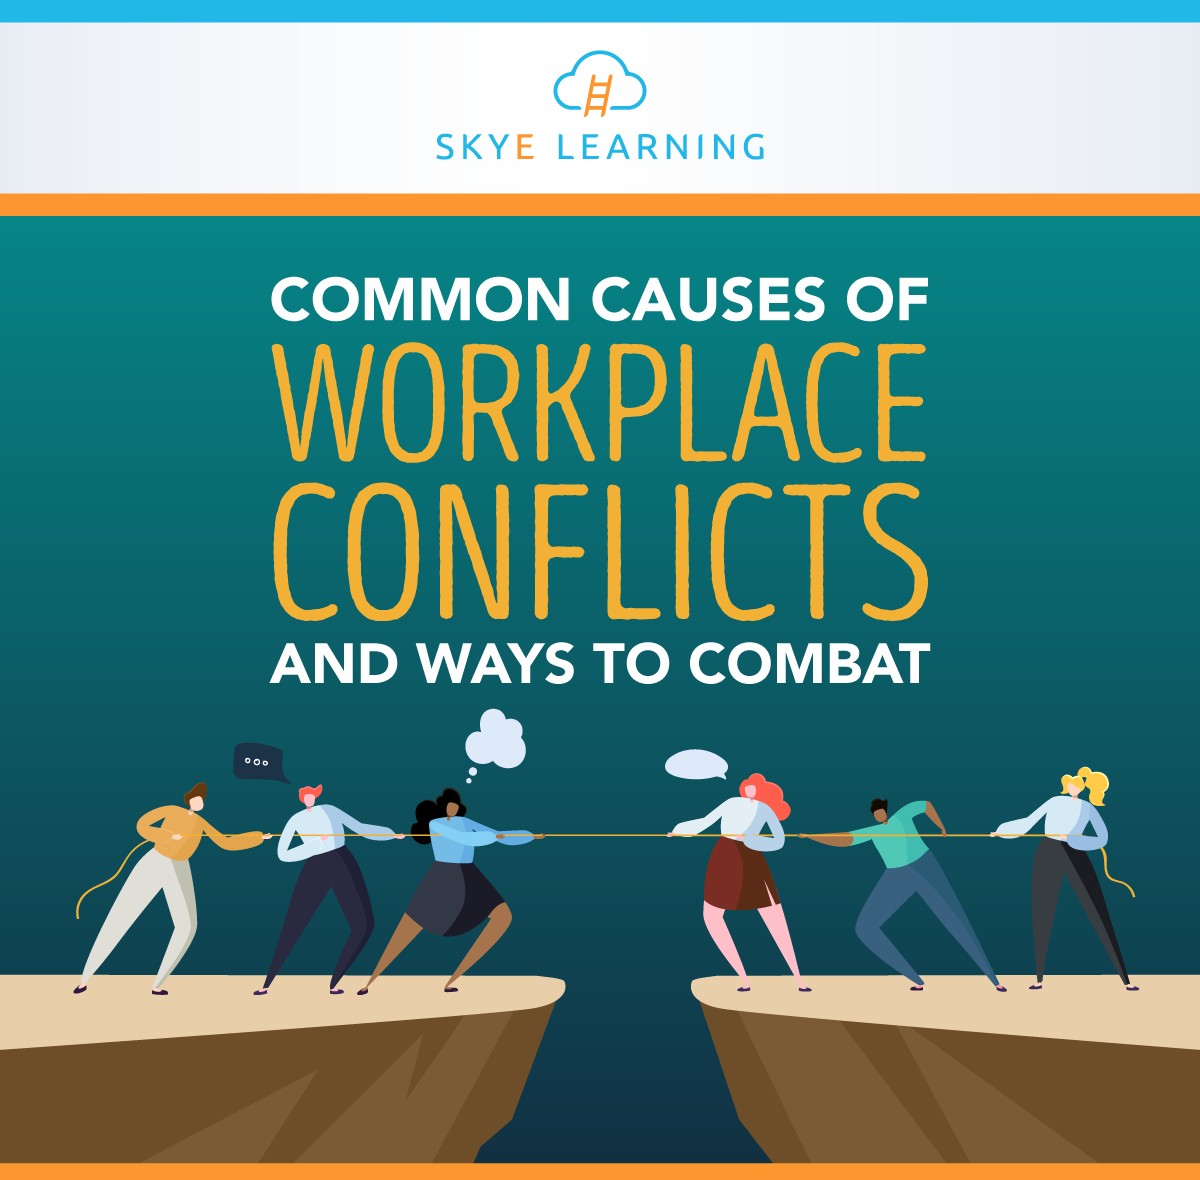 workplace-conflicts-SL-IG-truncated